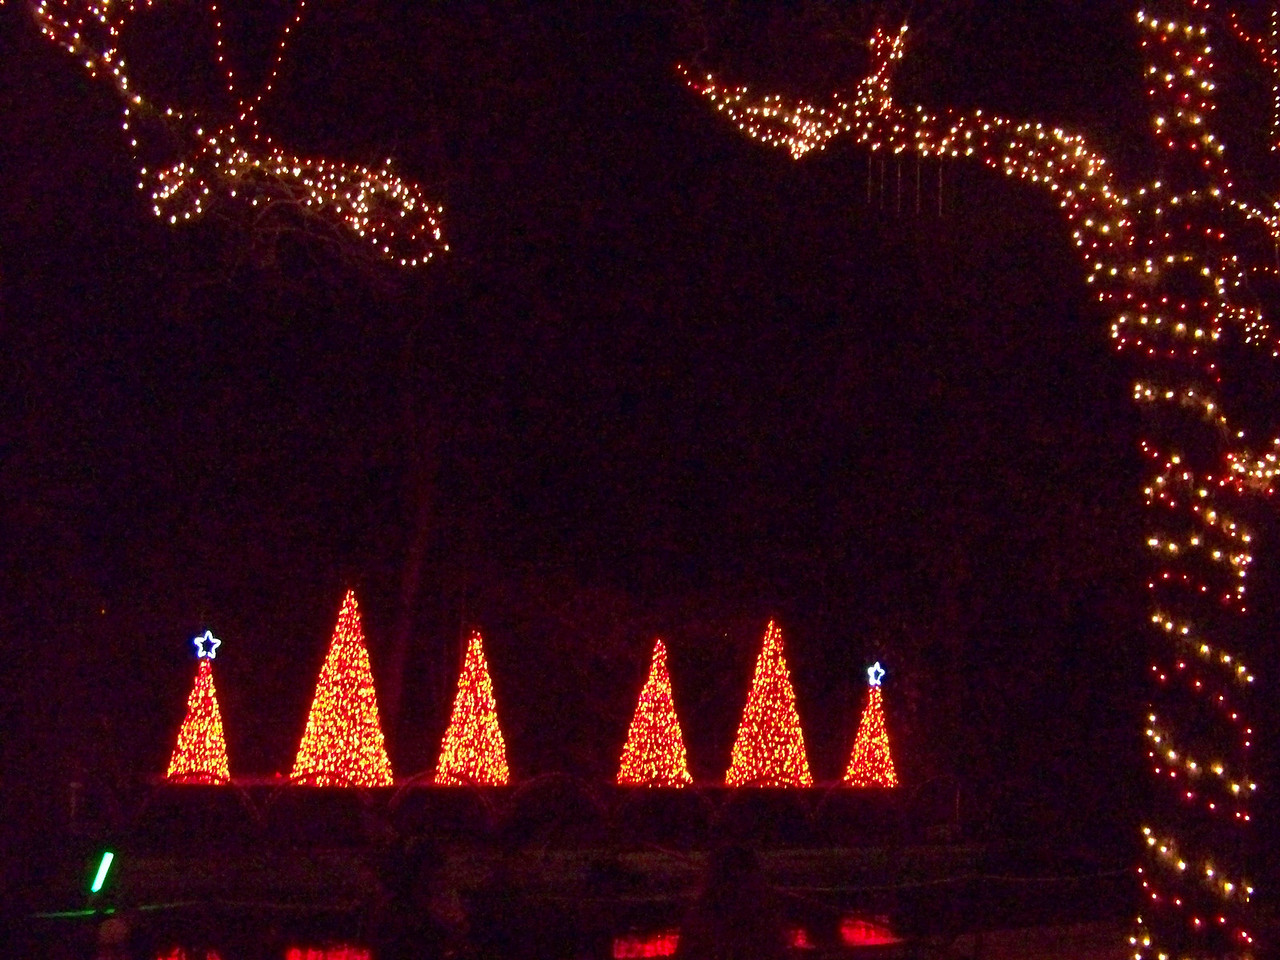 "In one section by the river, they had grandstands set up.  Every 15 minutes, an animated light show performed with the lights synchronized to various tunes.  I shot a video of the lights performing to Josh Groban's O Holy Night, which you can see at <b><a target=""_blank"" href=""http://www.youtube.com/watch?v=giZieqHgGY0"">this link.</a></b> [Schlitterbahn's Hill Country Christmas 2009]"